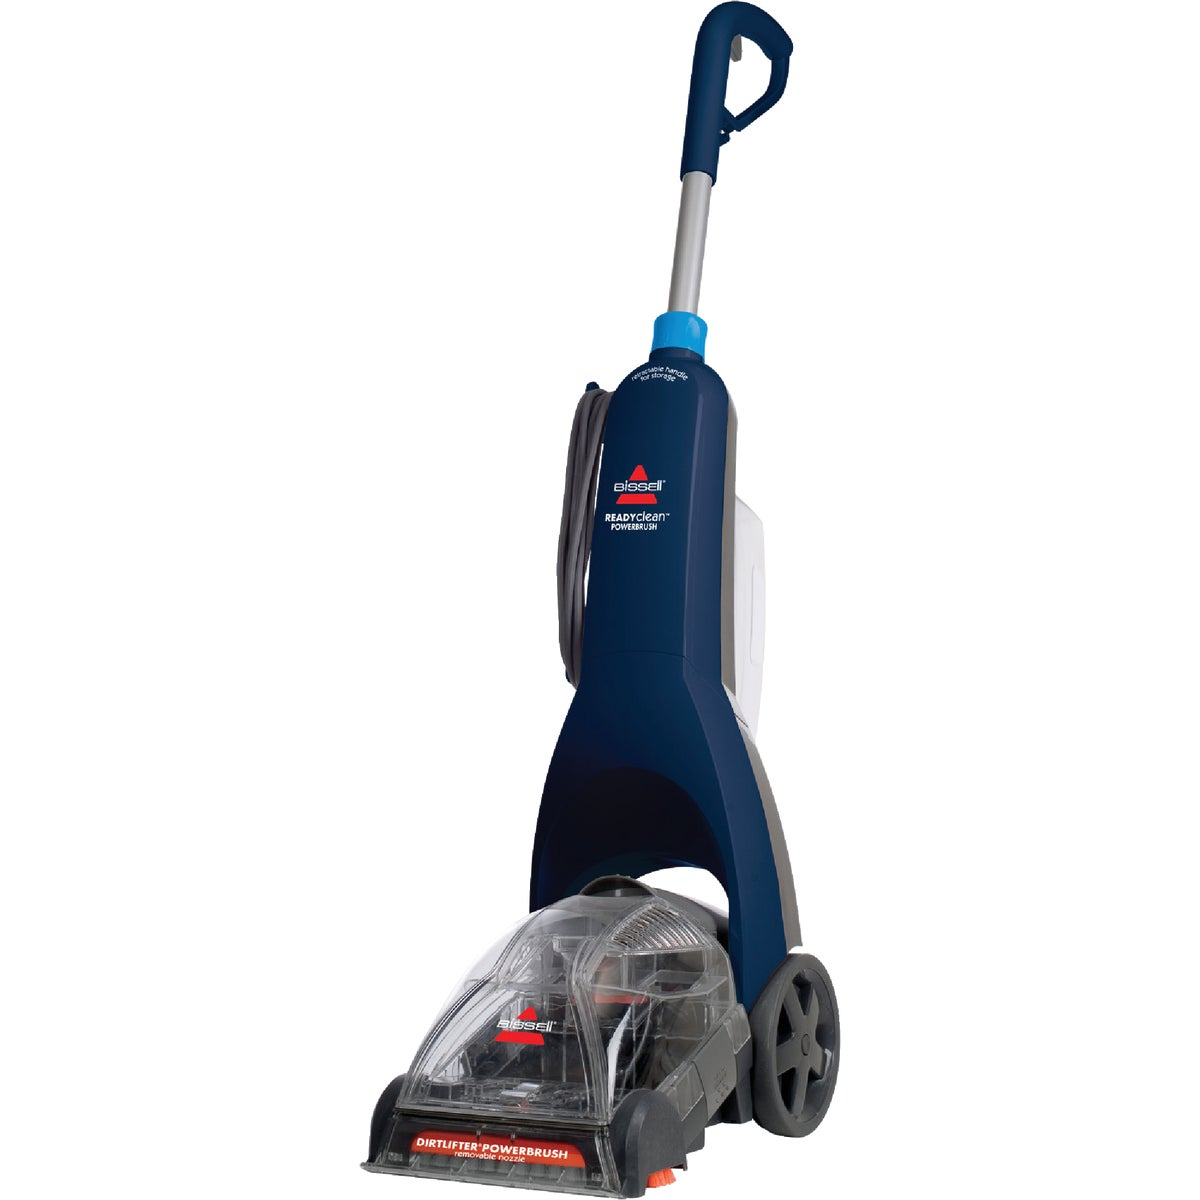 READY CLEAN POWER BRUSH - 47B2 by Bissell Homecare Int